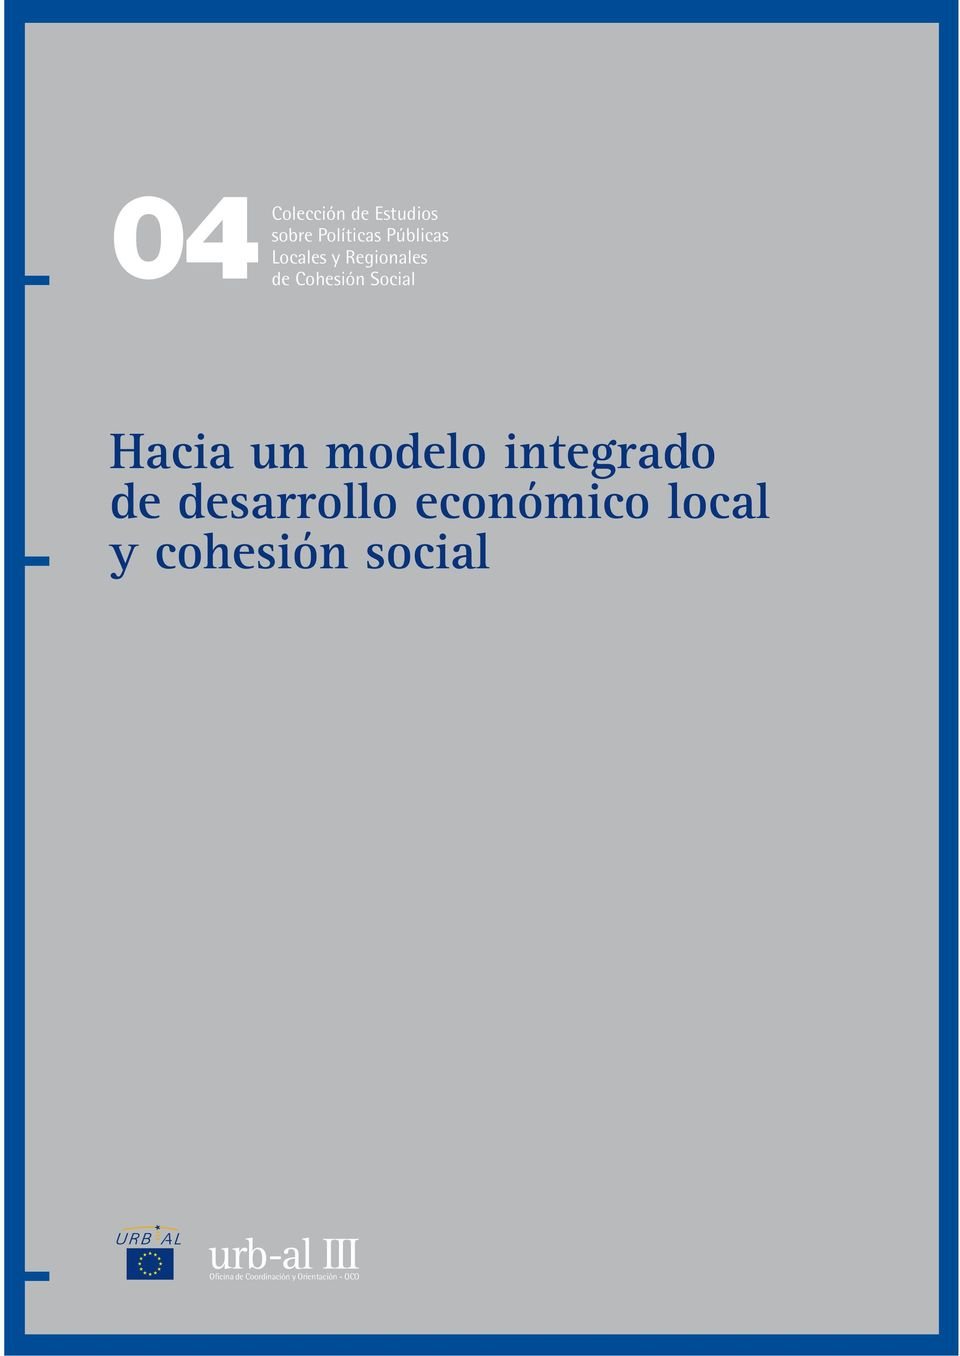 modelo integrado de desarrollo económico local y